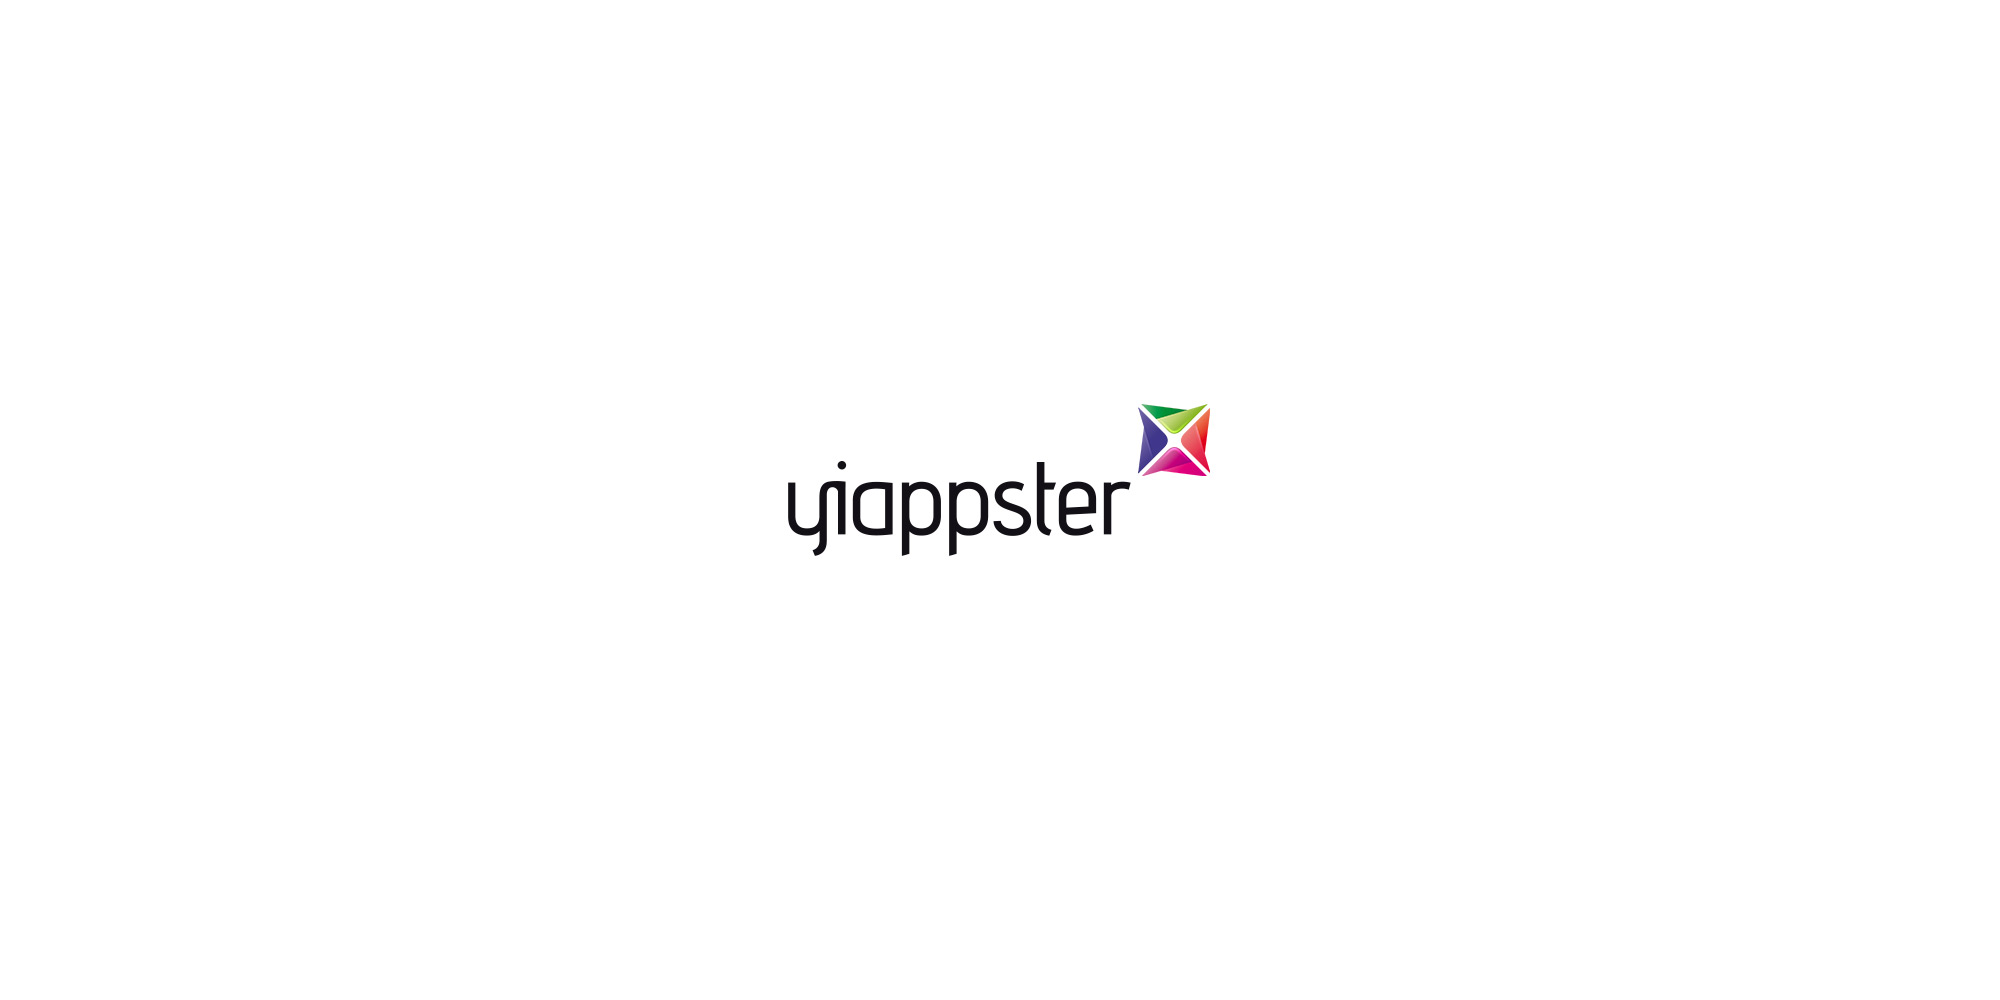 Yiappster-1